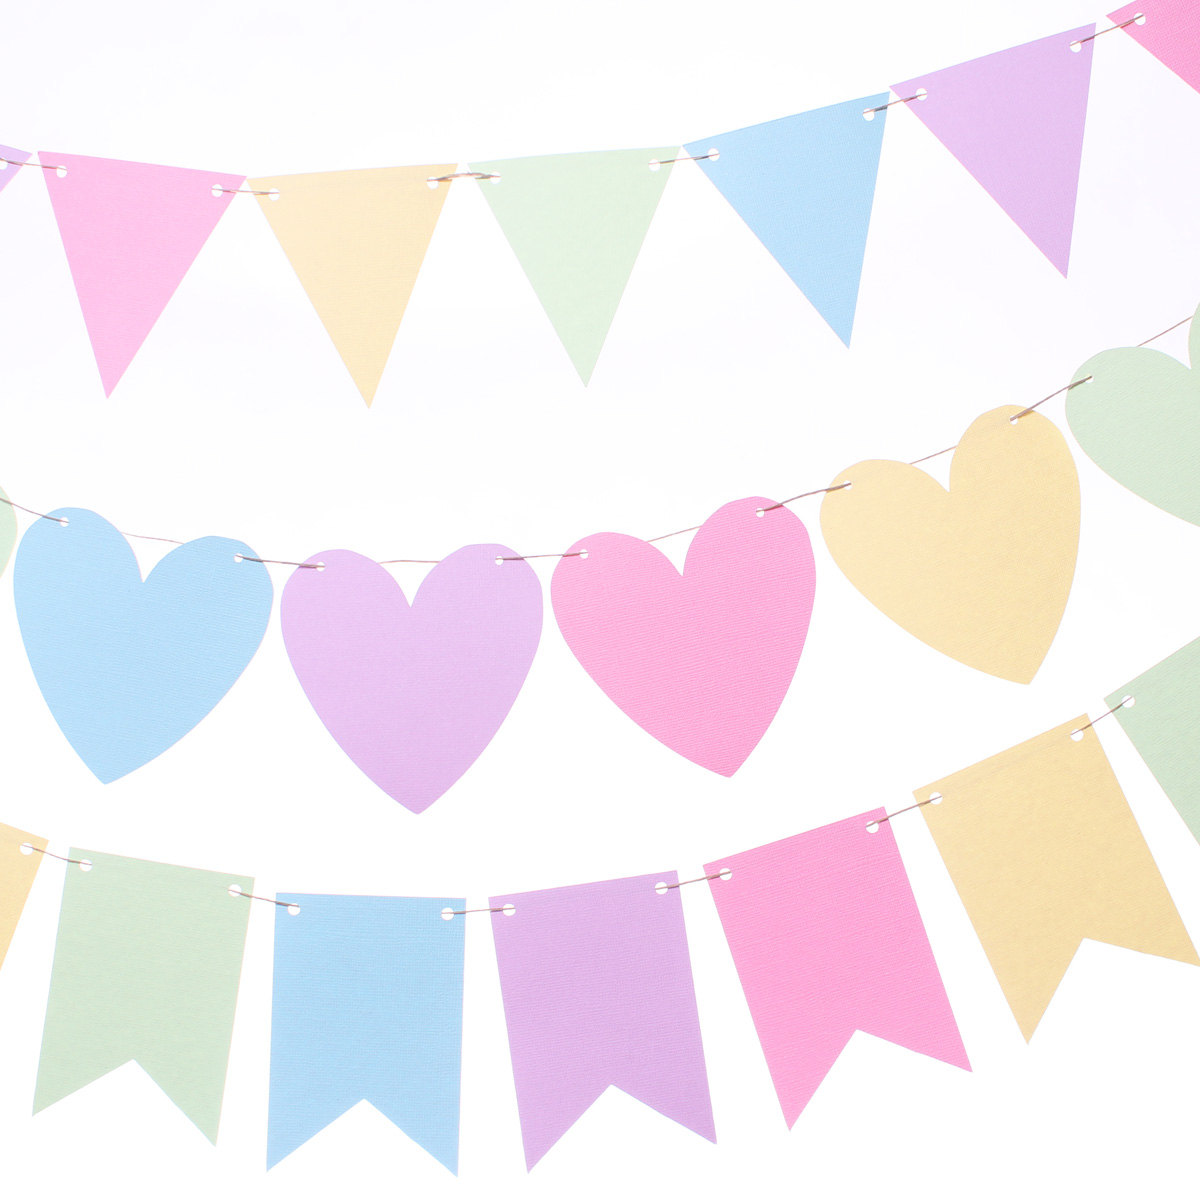 Pastel banner clipart transparent library Pastel rainbow flag banner bunting by makeitmerryshop jpg ... transparent library